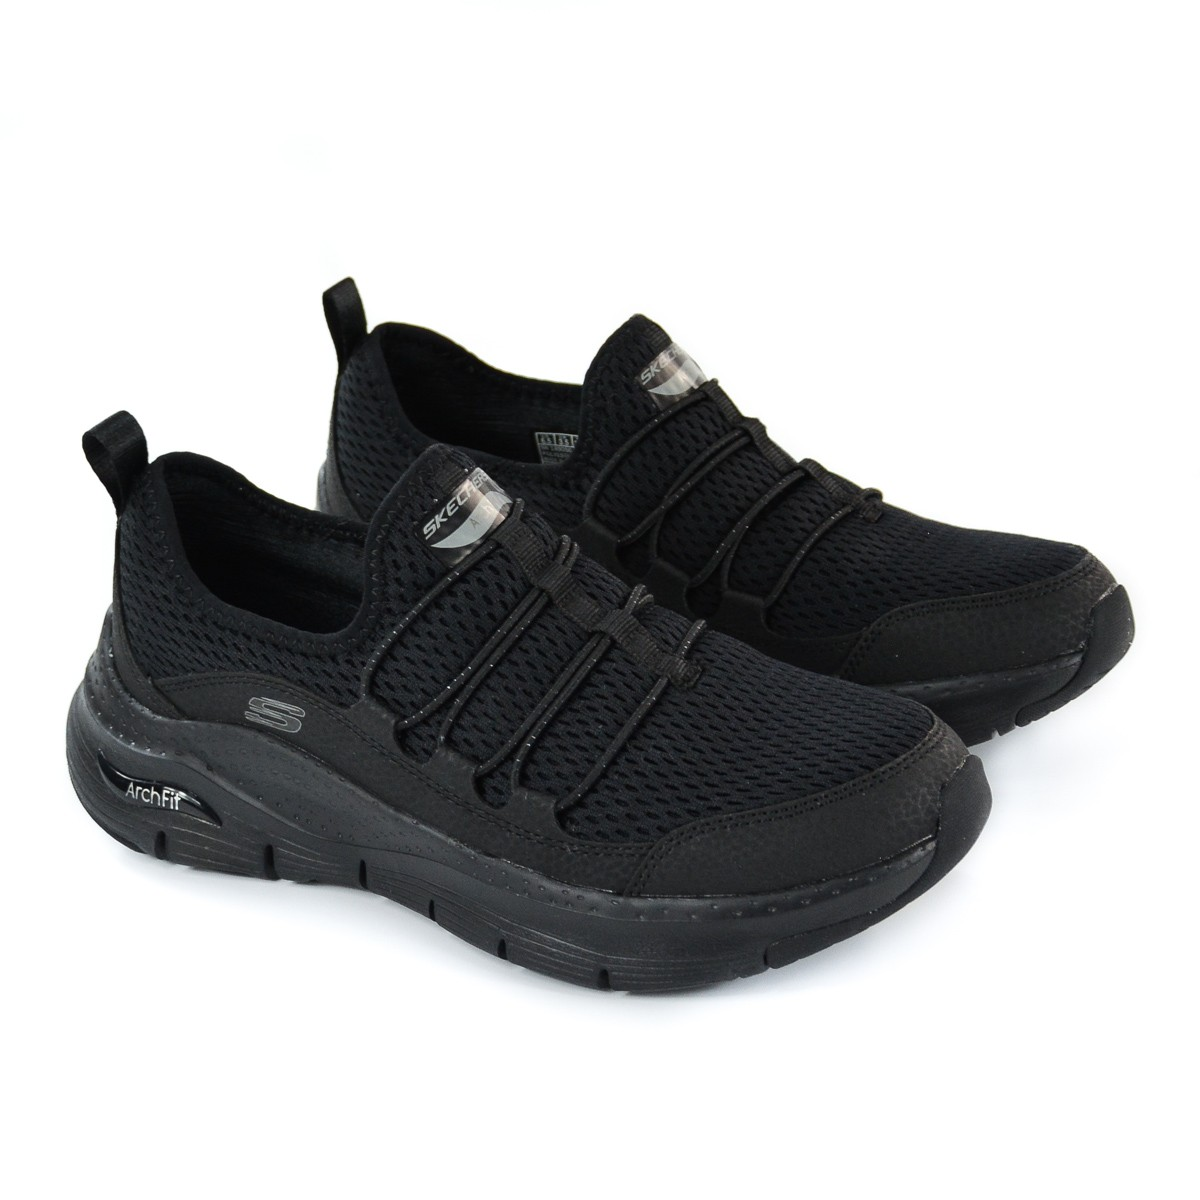 TÊNIS FEM ARCH FIT LUCKY THOUGHTS PRETO SKECHERS 92776